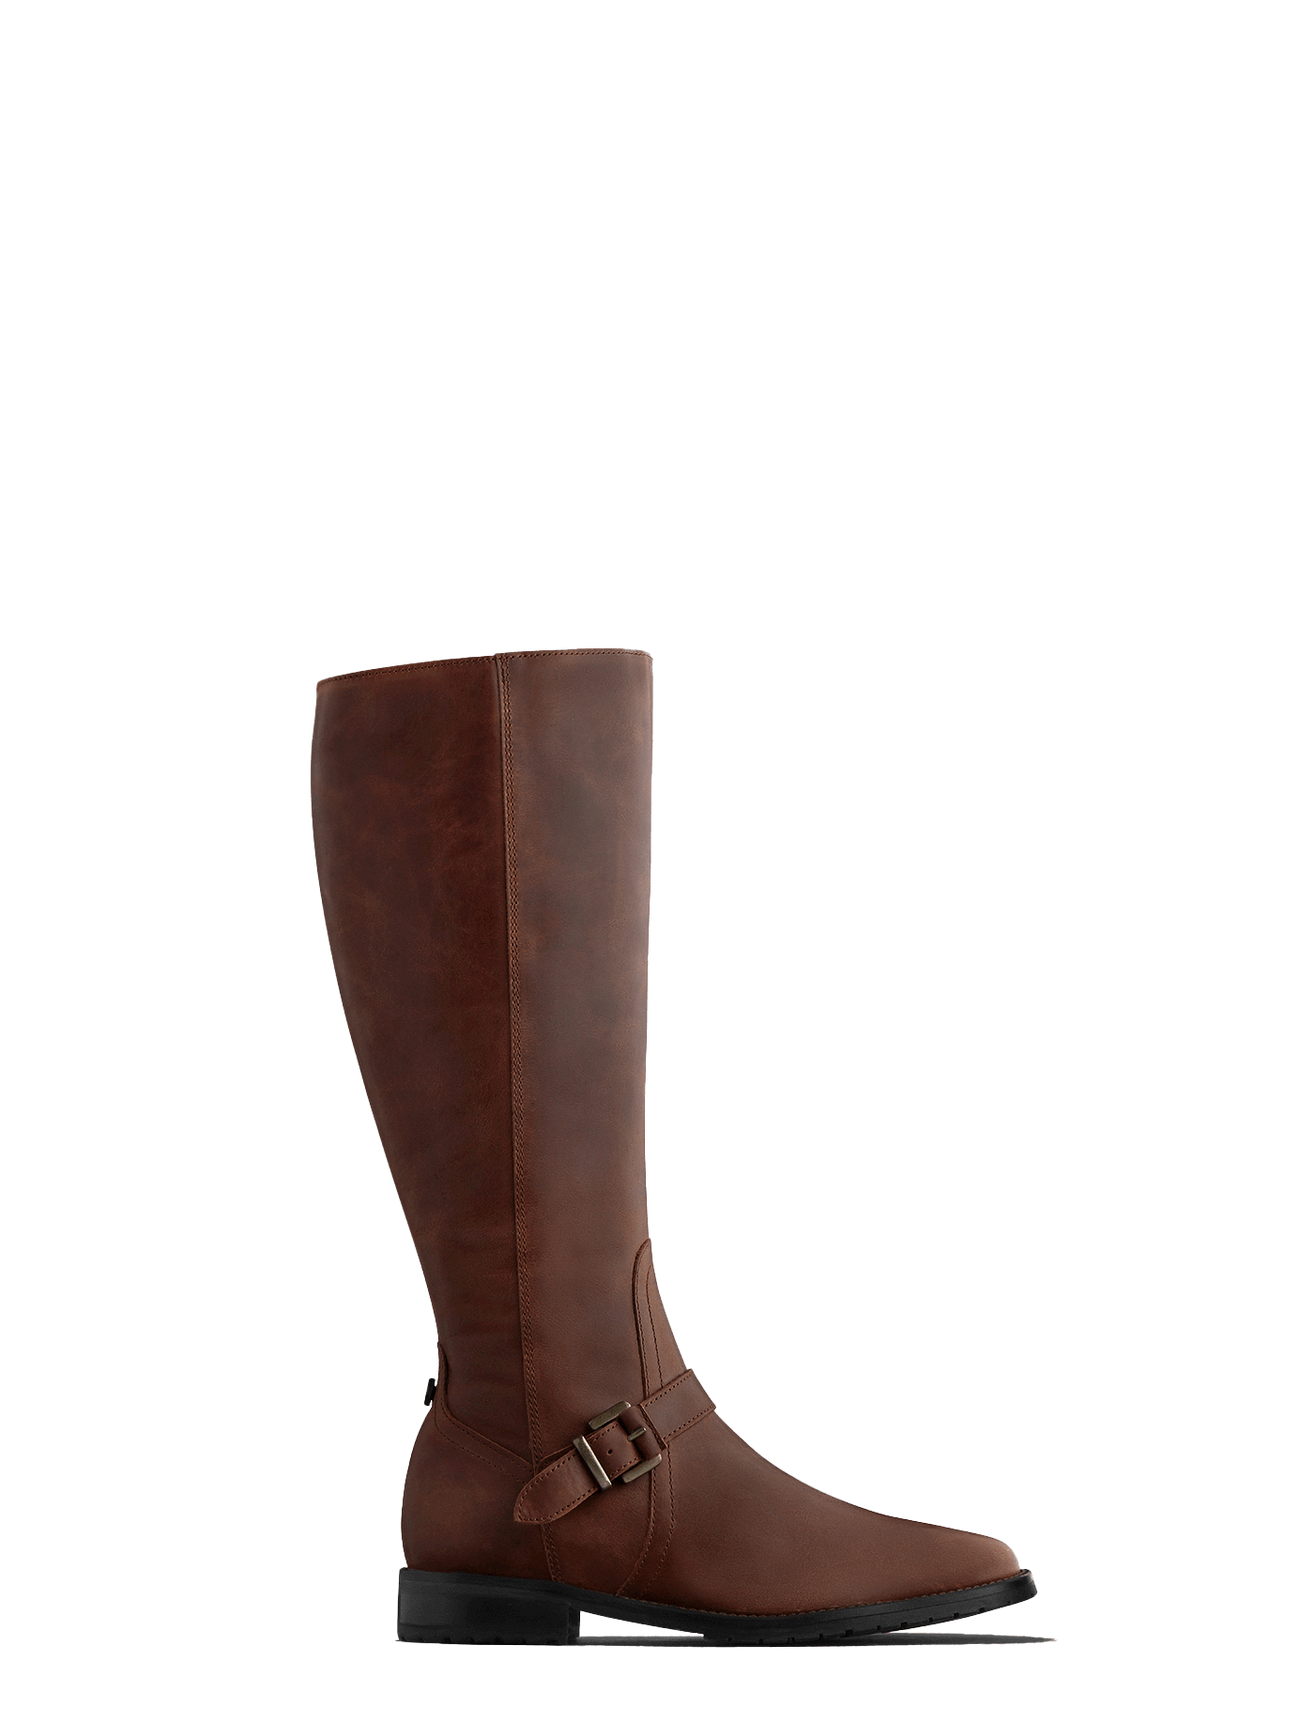 Sherwood - the ultimate knee high brown leather biker style boot.